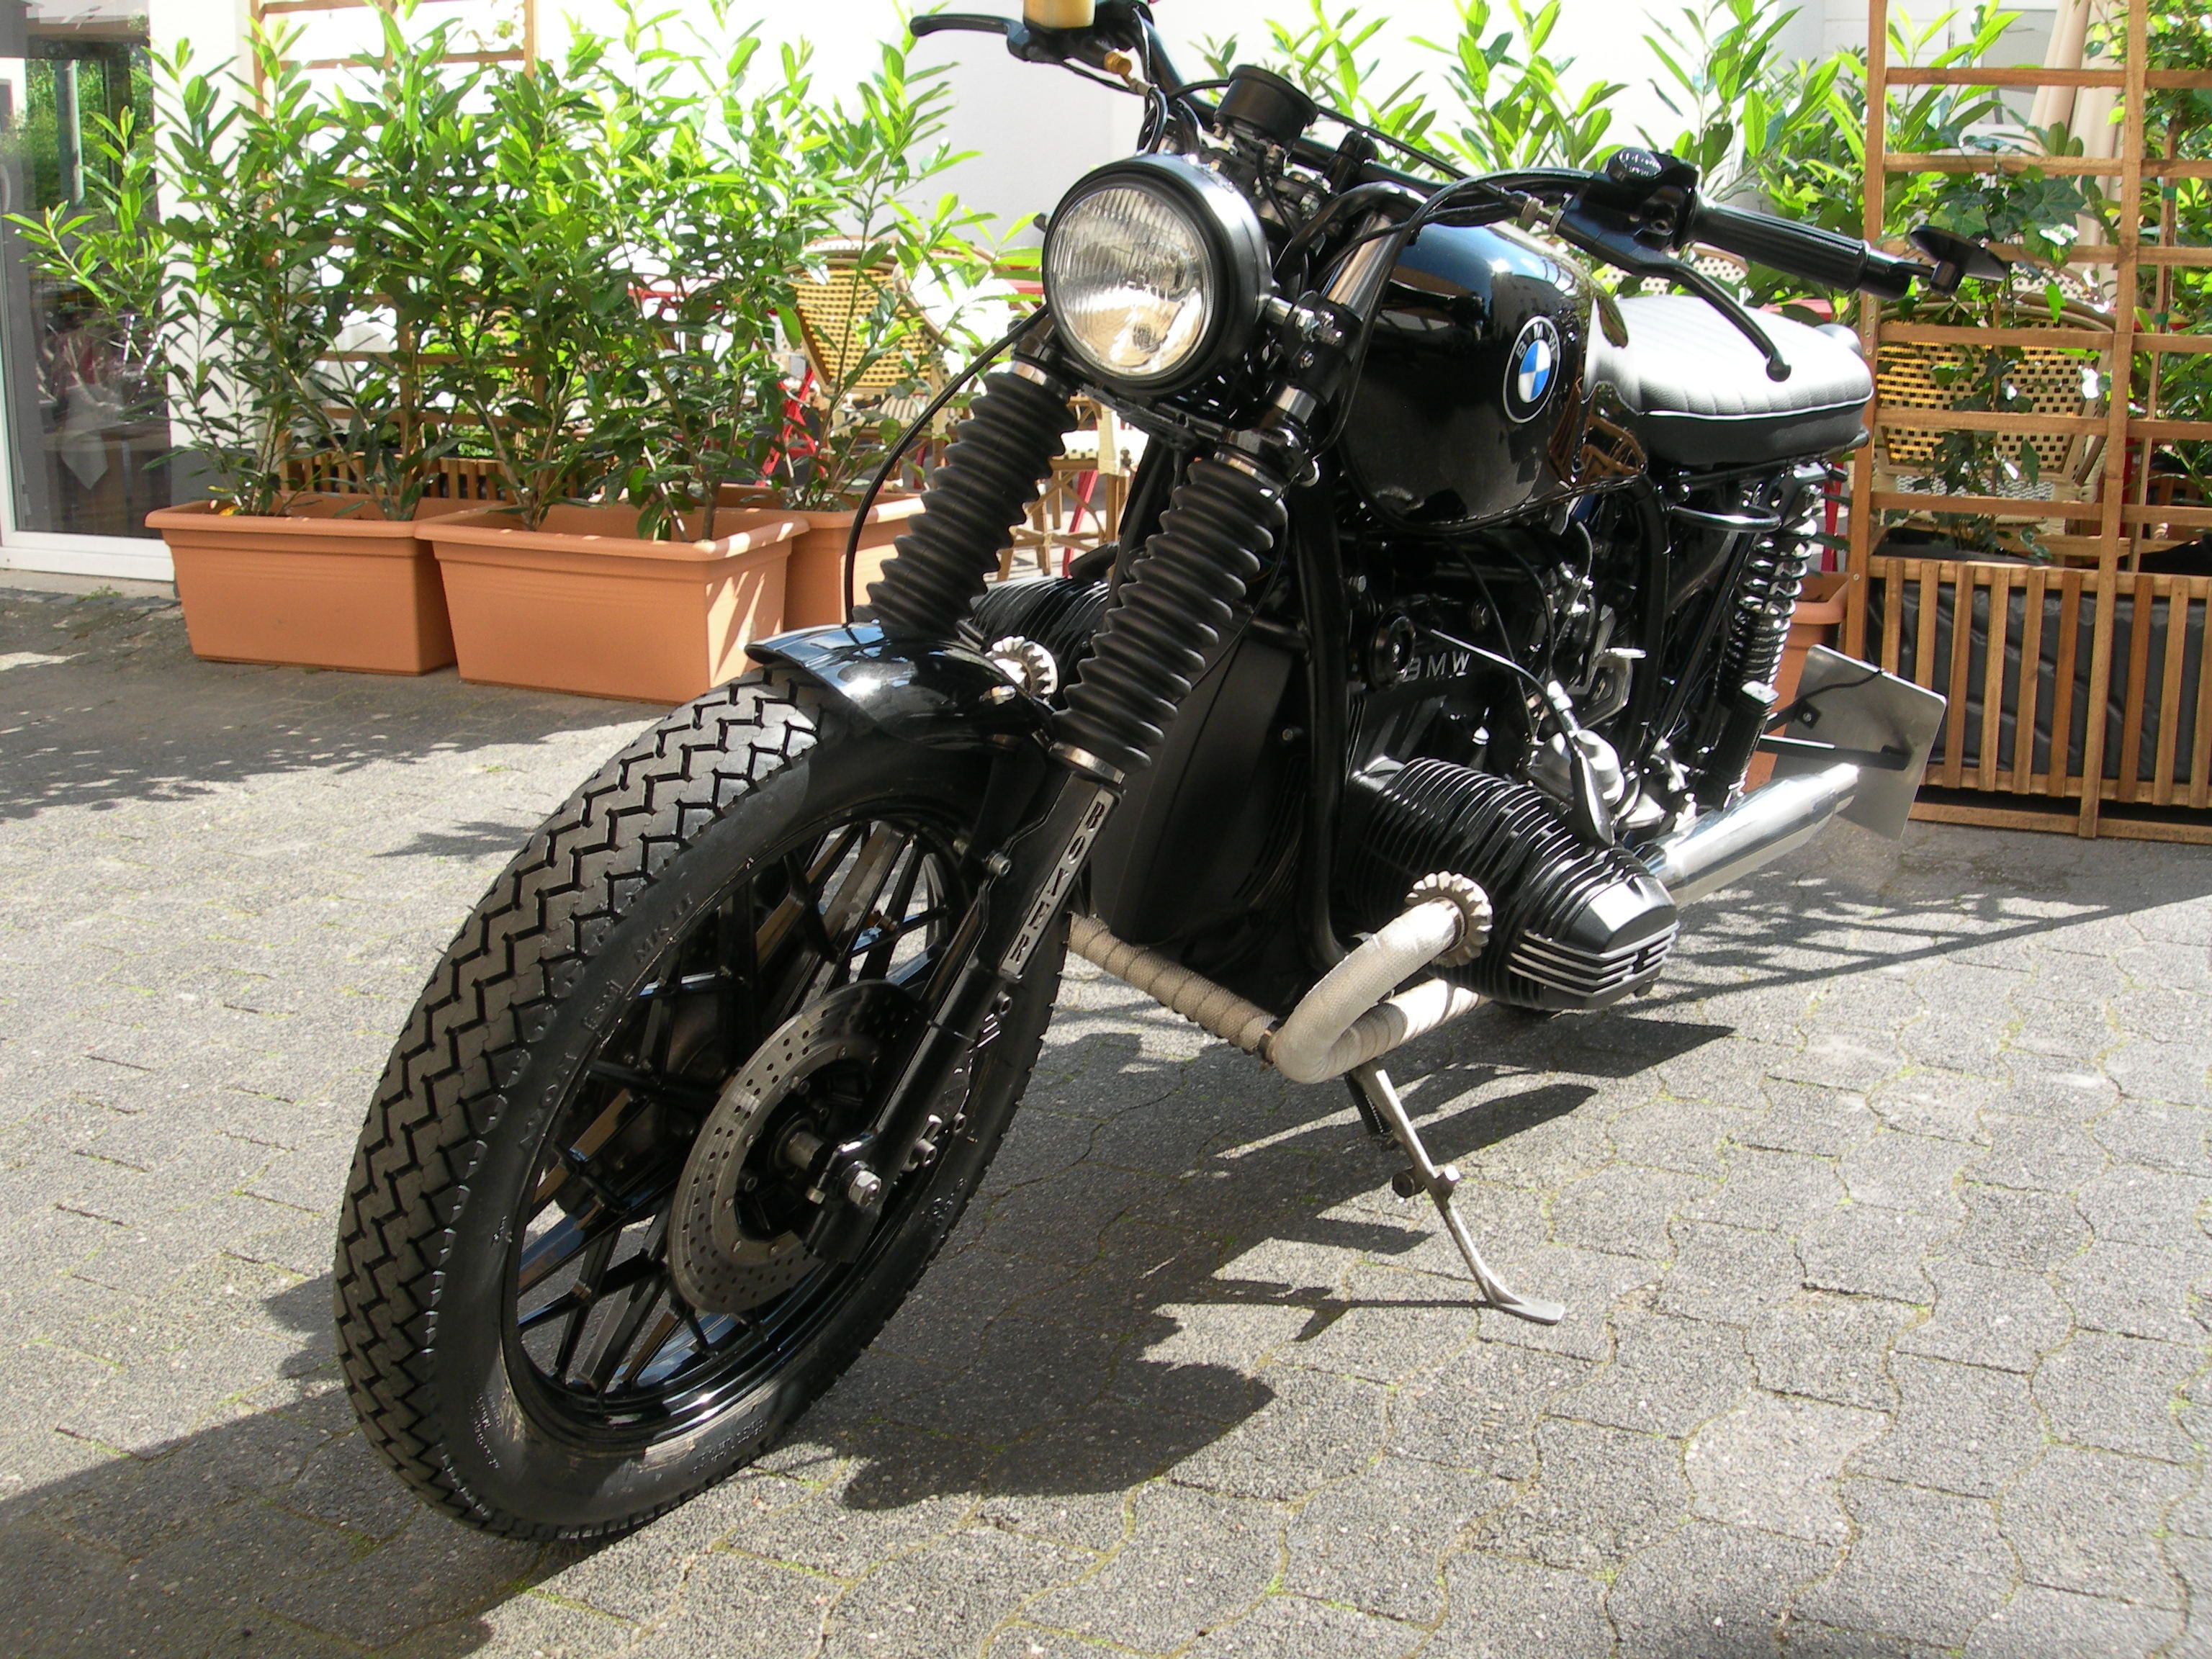 BMW R80 RT Roadster < V2-Scooterfarm Customs